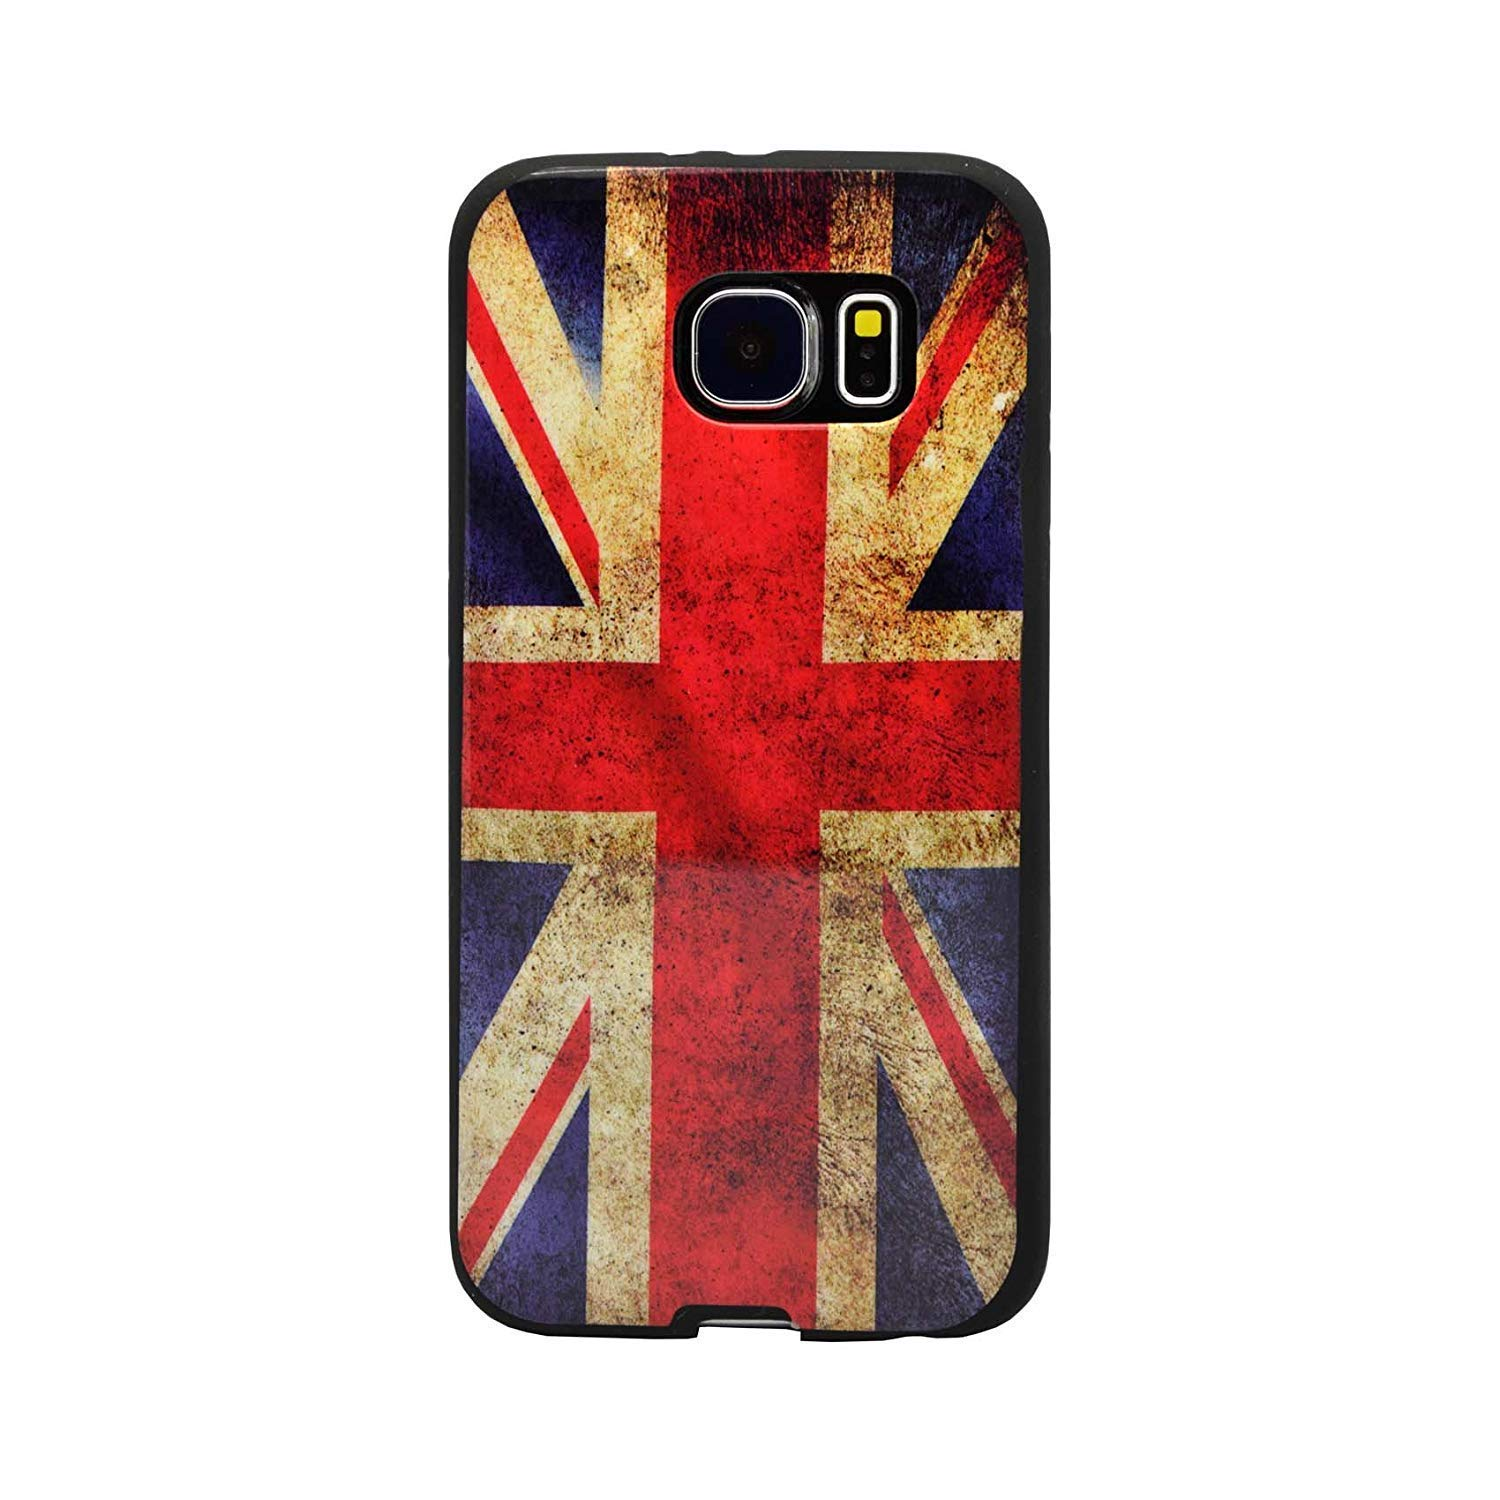 b7c6cd8f2a COMPATIBLE WITH SAMSUNG GALAXY S6 VINTAGE UNION JACK PRINTED DESIGN GEL CASE  COVER AND SCREEN PROTECTOR FROM GADGET BOXX: Amazon.co.uk: Electronics